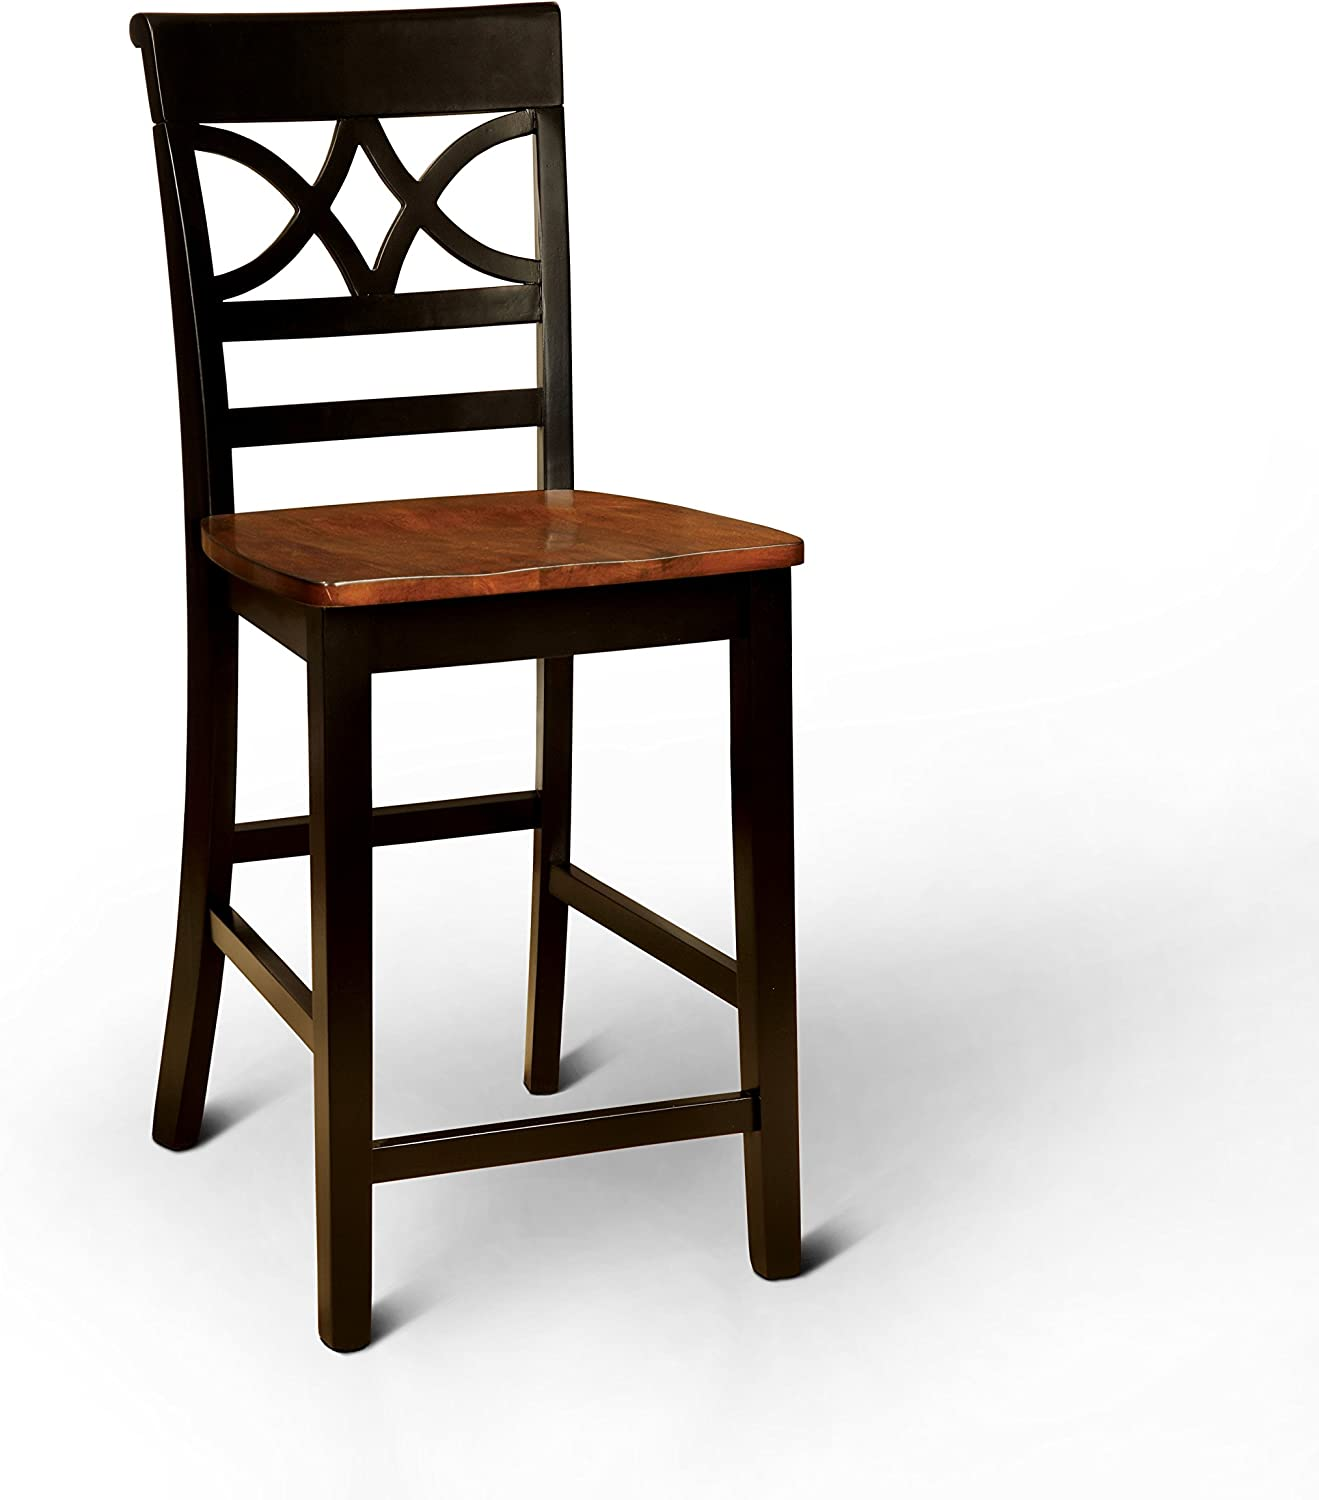 Furniture of America Cherrine Country Style Pub Dining Chair, Oak/Black, Set of 2